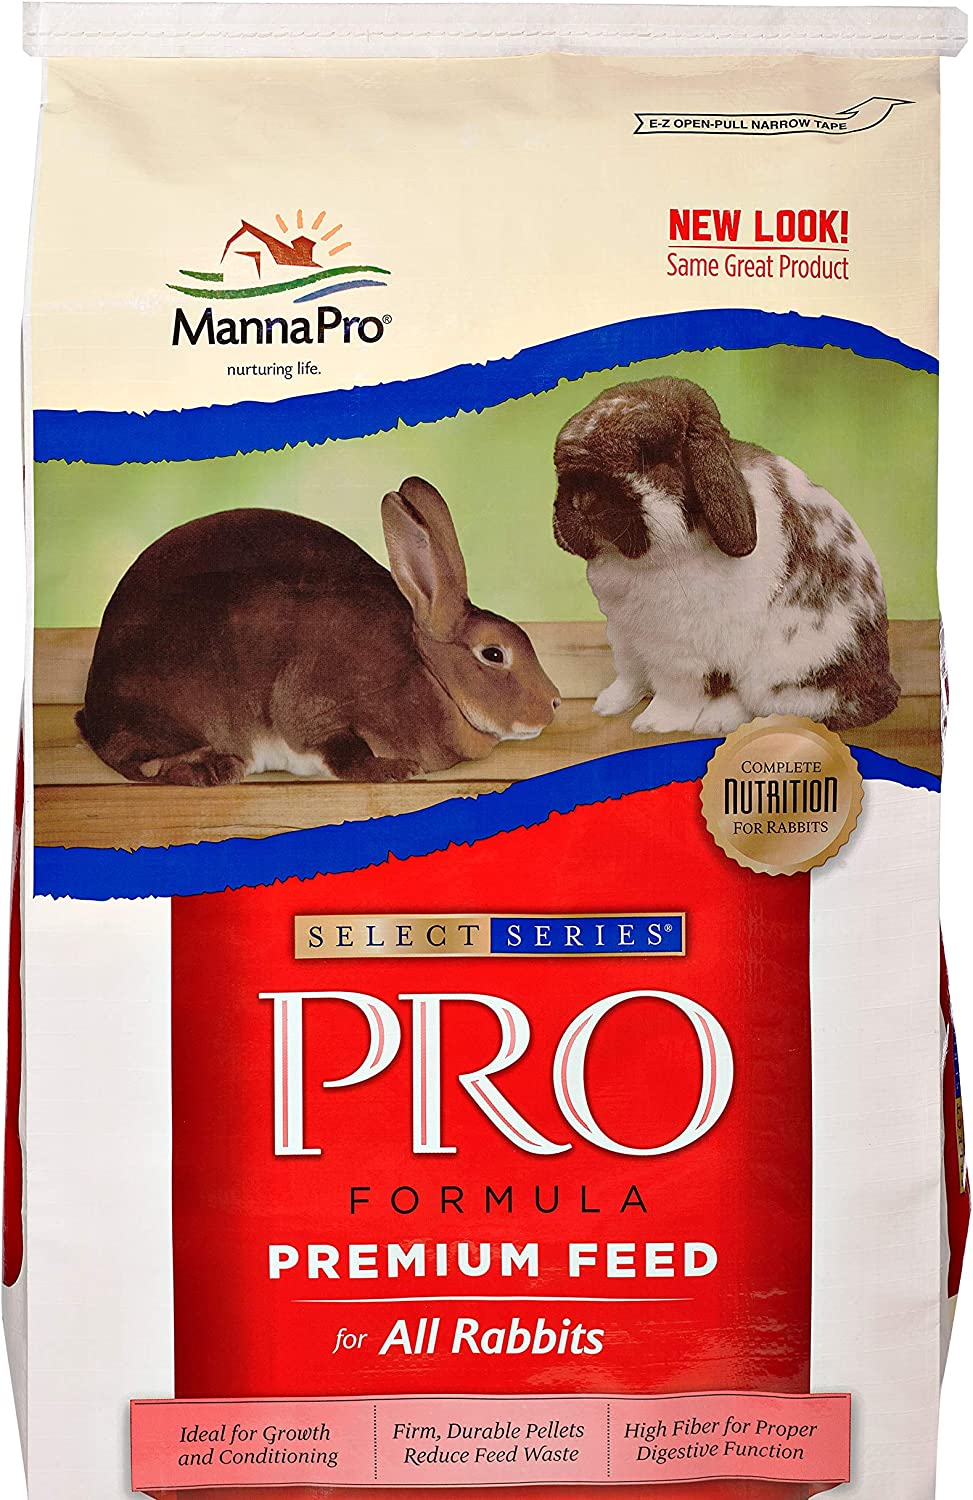 Manna Pro Select Series SHO Formula   Super-Premium Feed for Show Rabbits  Pelleted Feed   50 Pounds